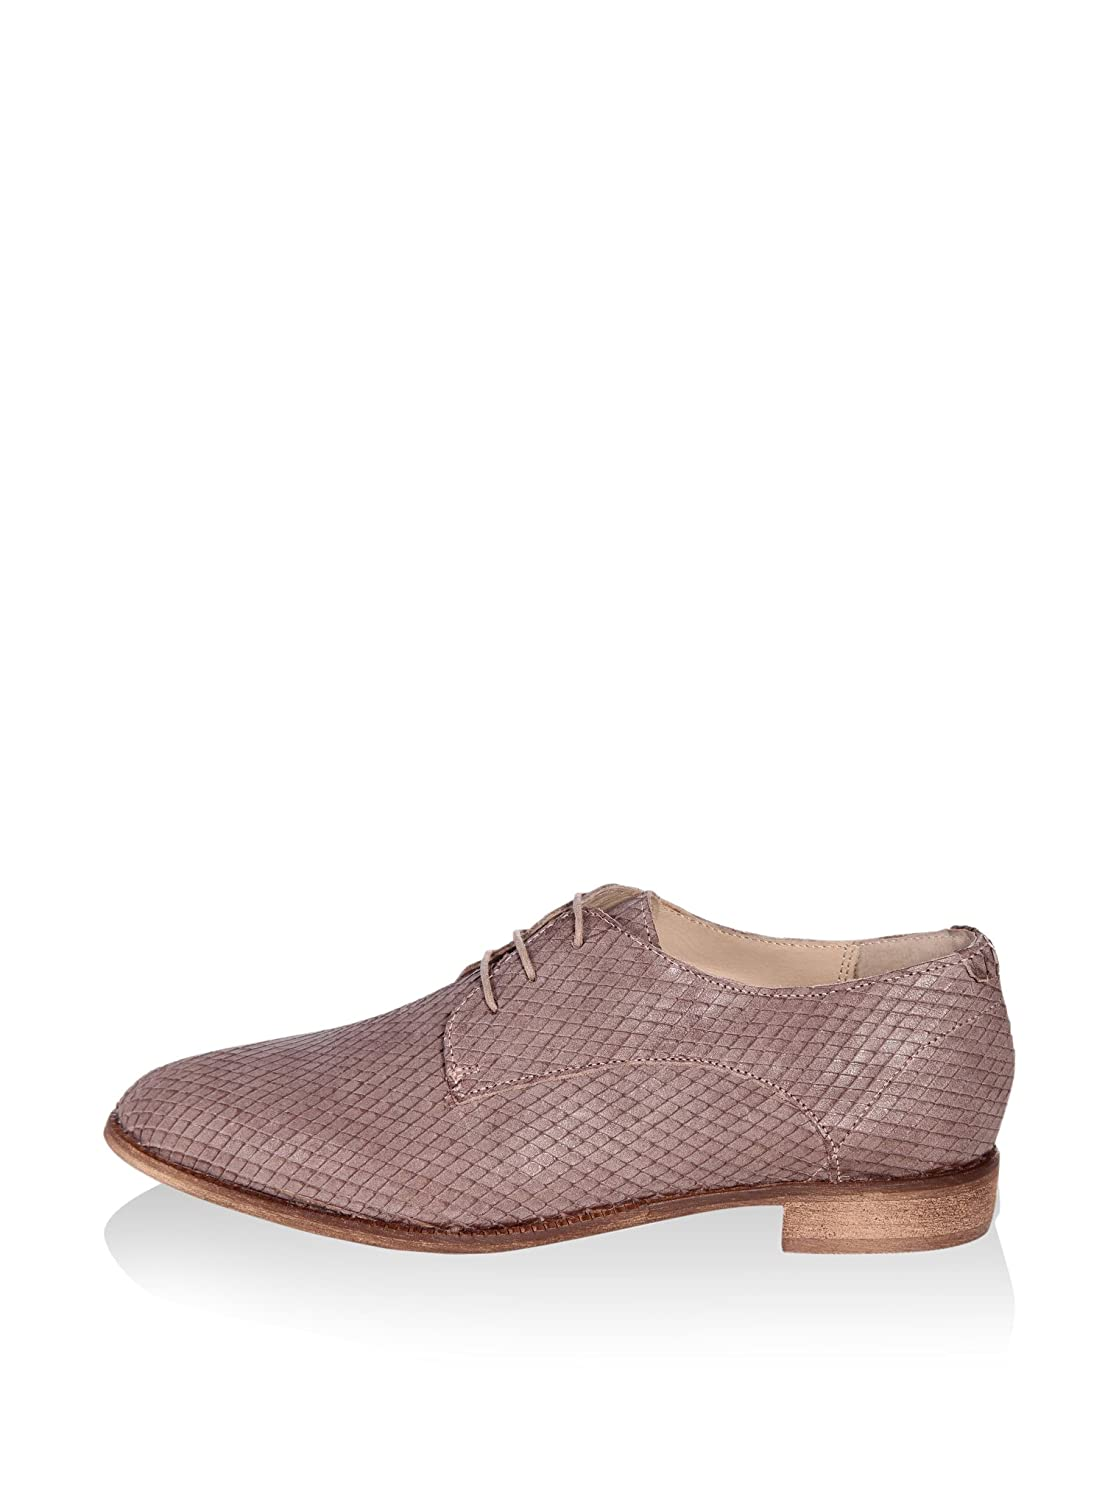 Rock Marrón Eu 40 Giorgio 70Off Picino Derby Www Zapatos kXNn08wOP